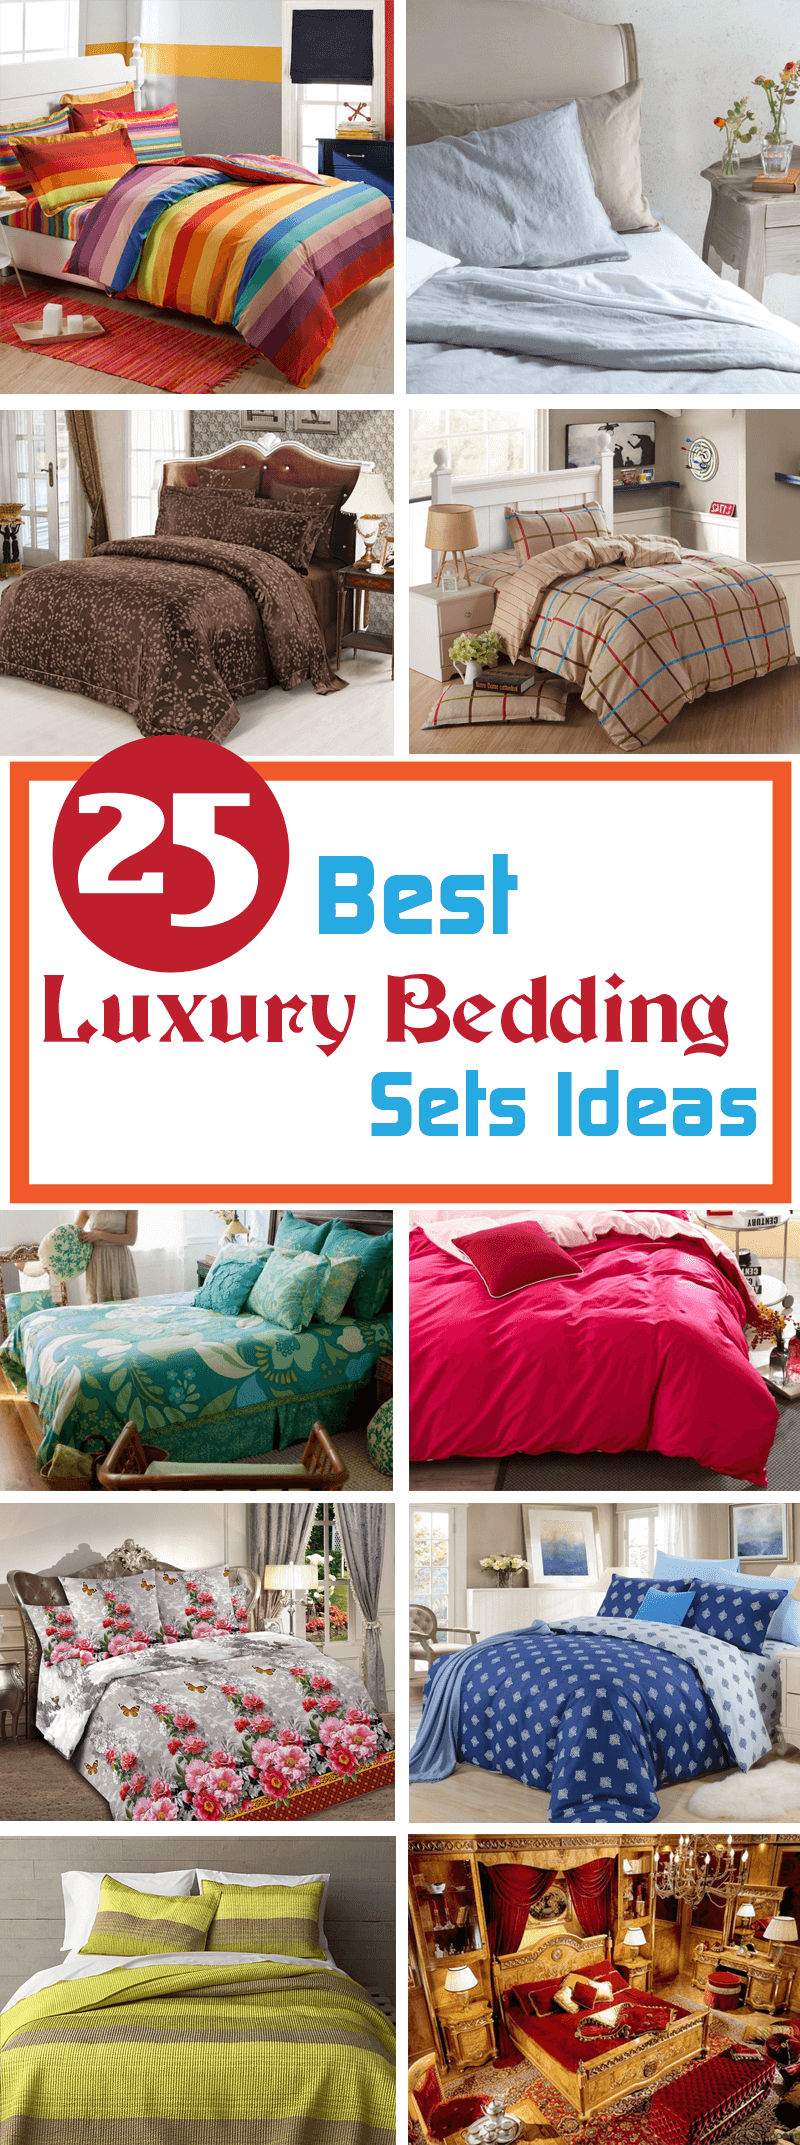 best luxury bedding sets ideas